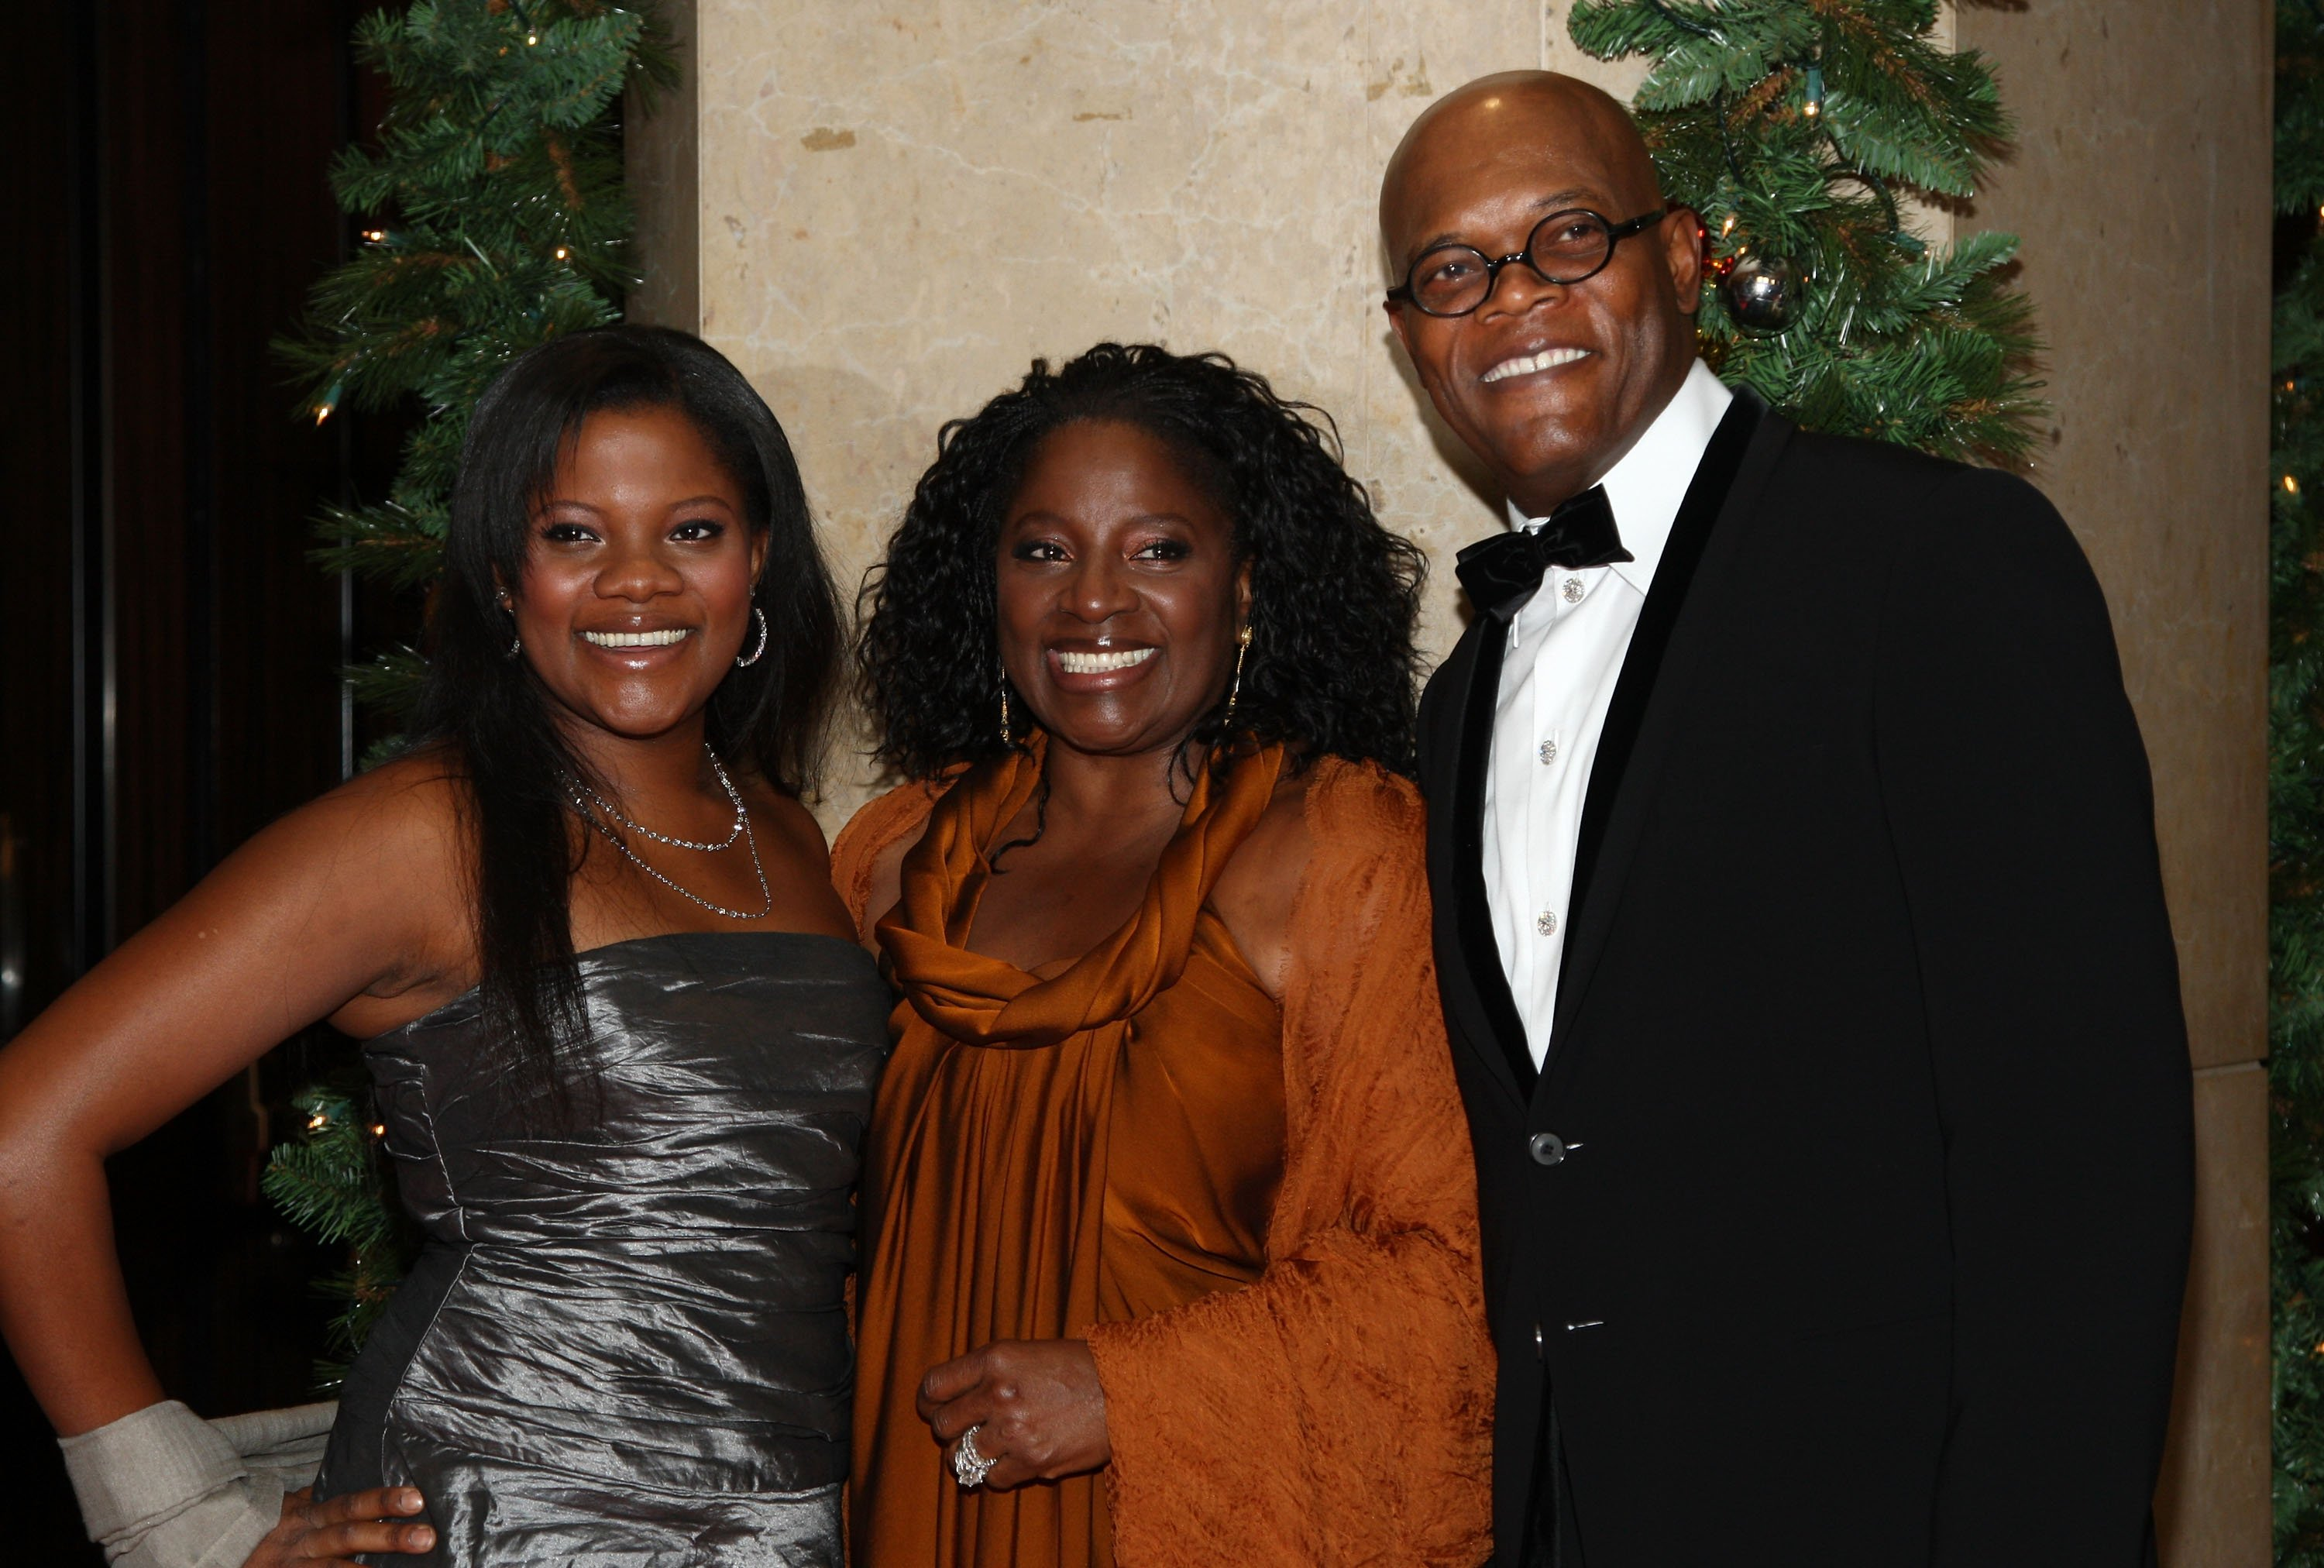 Samuel L. Jackson, LaTanya Richardson, and Zoe Jackson arrive at the 23rd annual American Cinematheque show on December 1, 2008. | Photo: Getty Images